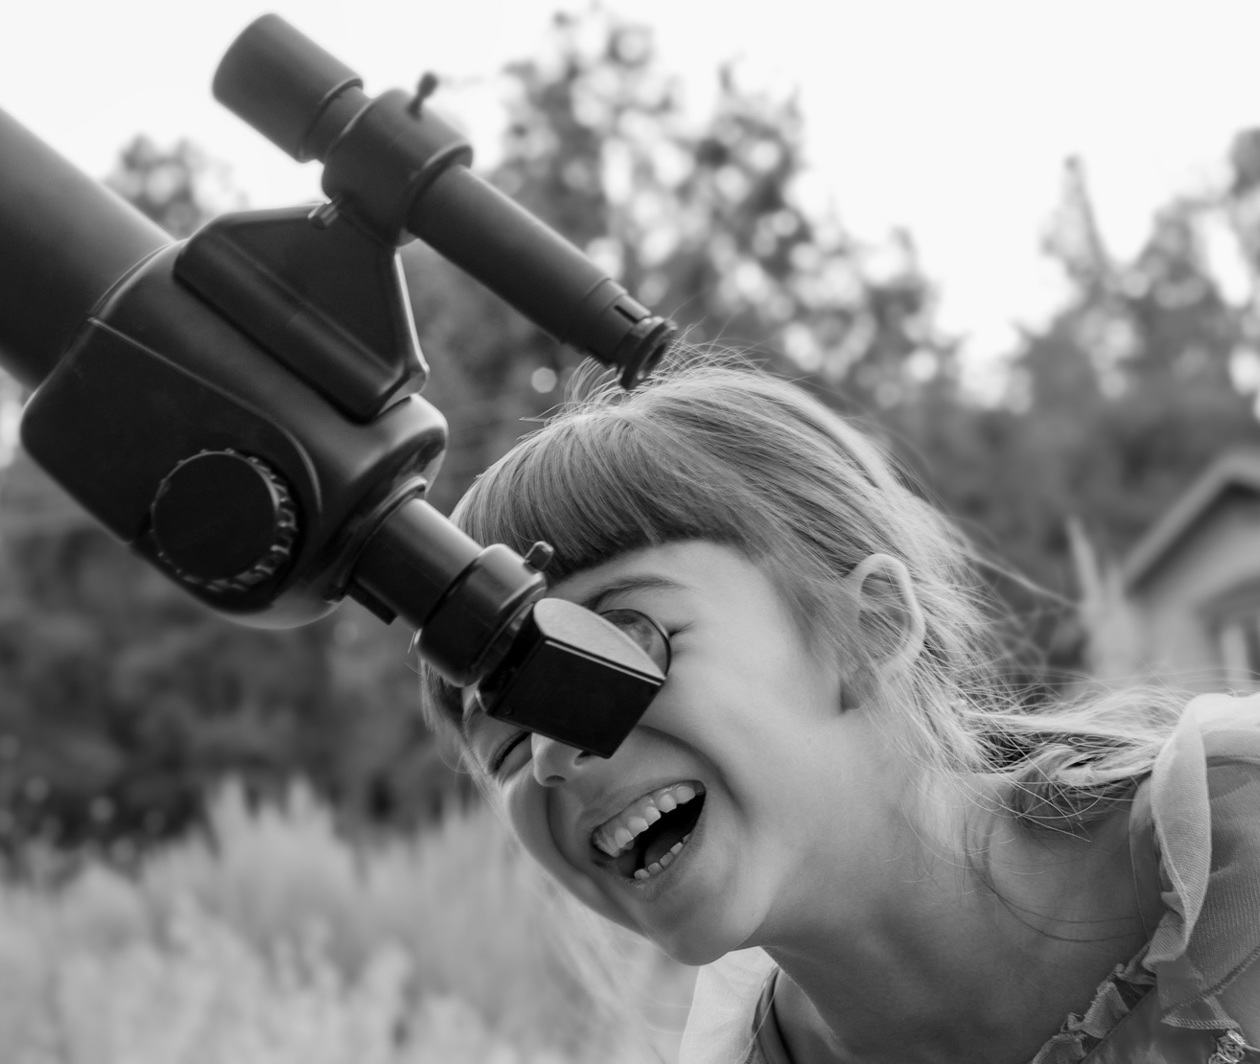 MPL701.2 Observing the World Around You: Qualitative Research